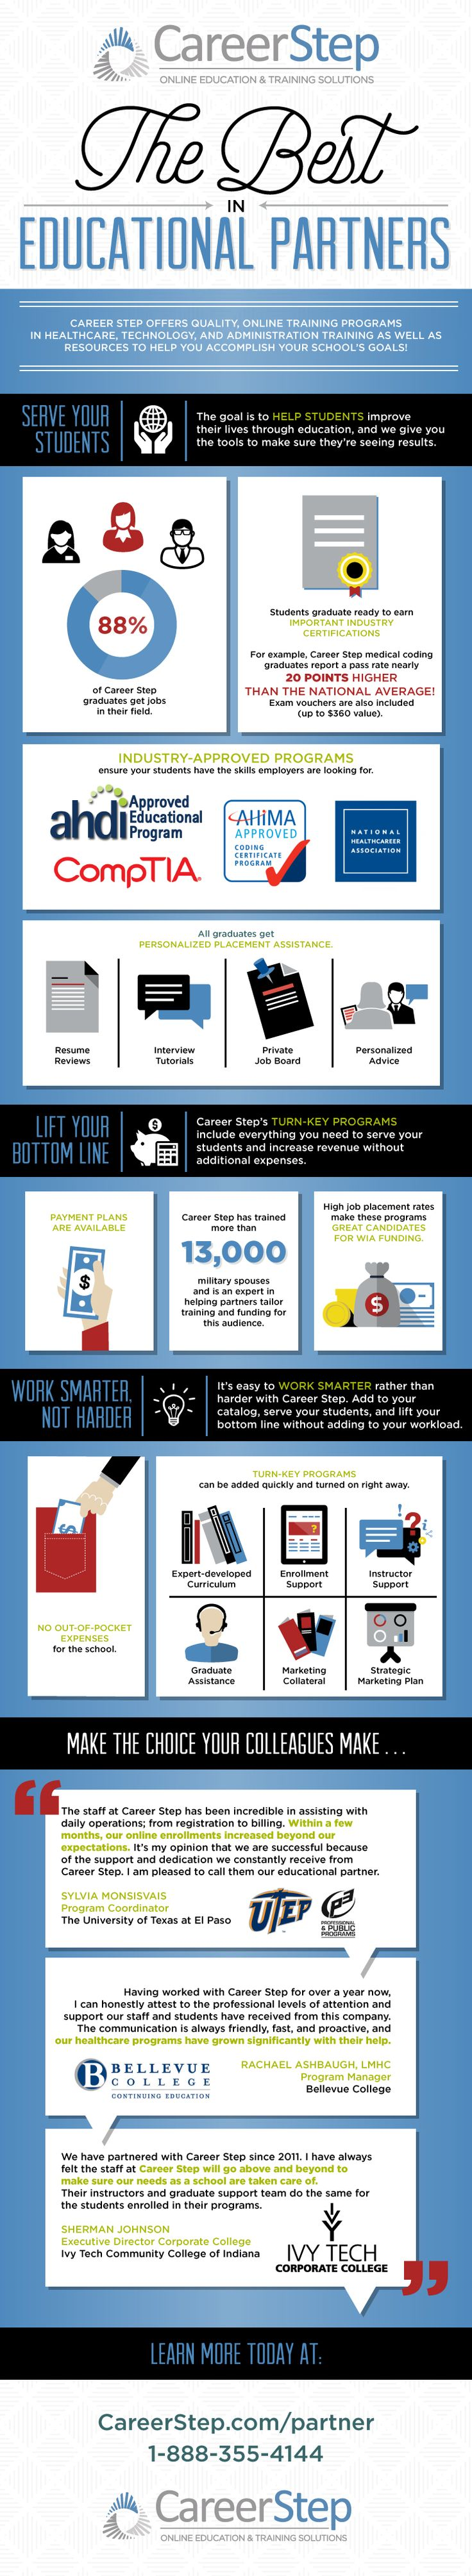 Career Step Publishes New Infographic on Partnerships with Colleges and Universities Nationwide http://www.careerstep.com/blog/career-step-news/career-step-publishes-new-academic-partnerships-infographic